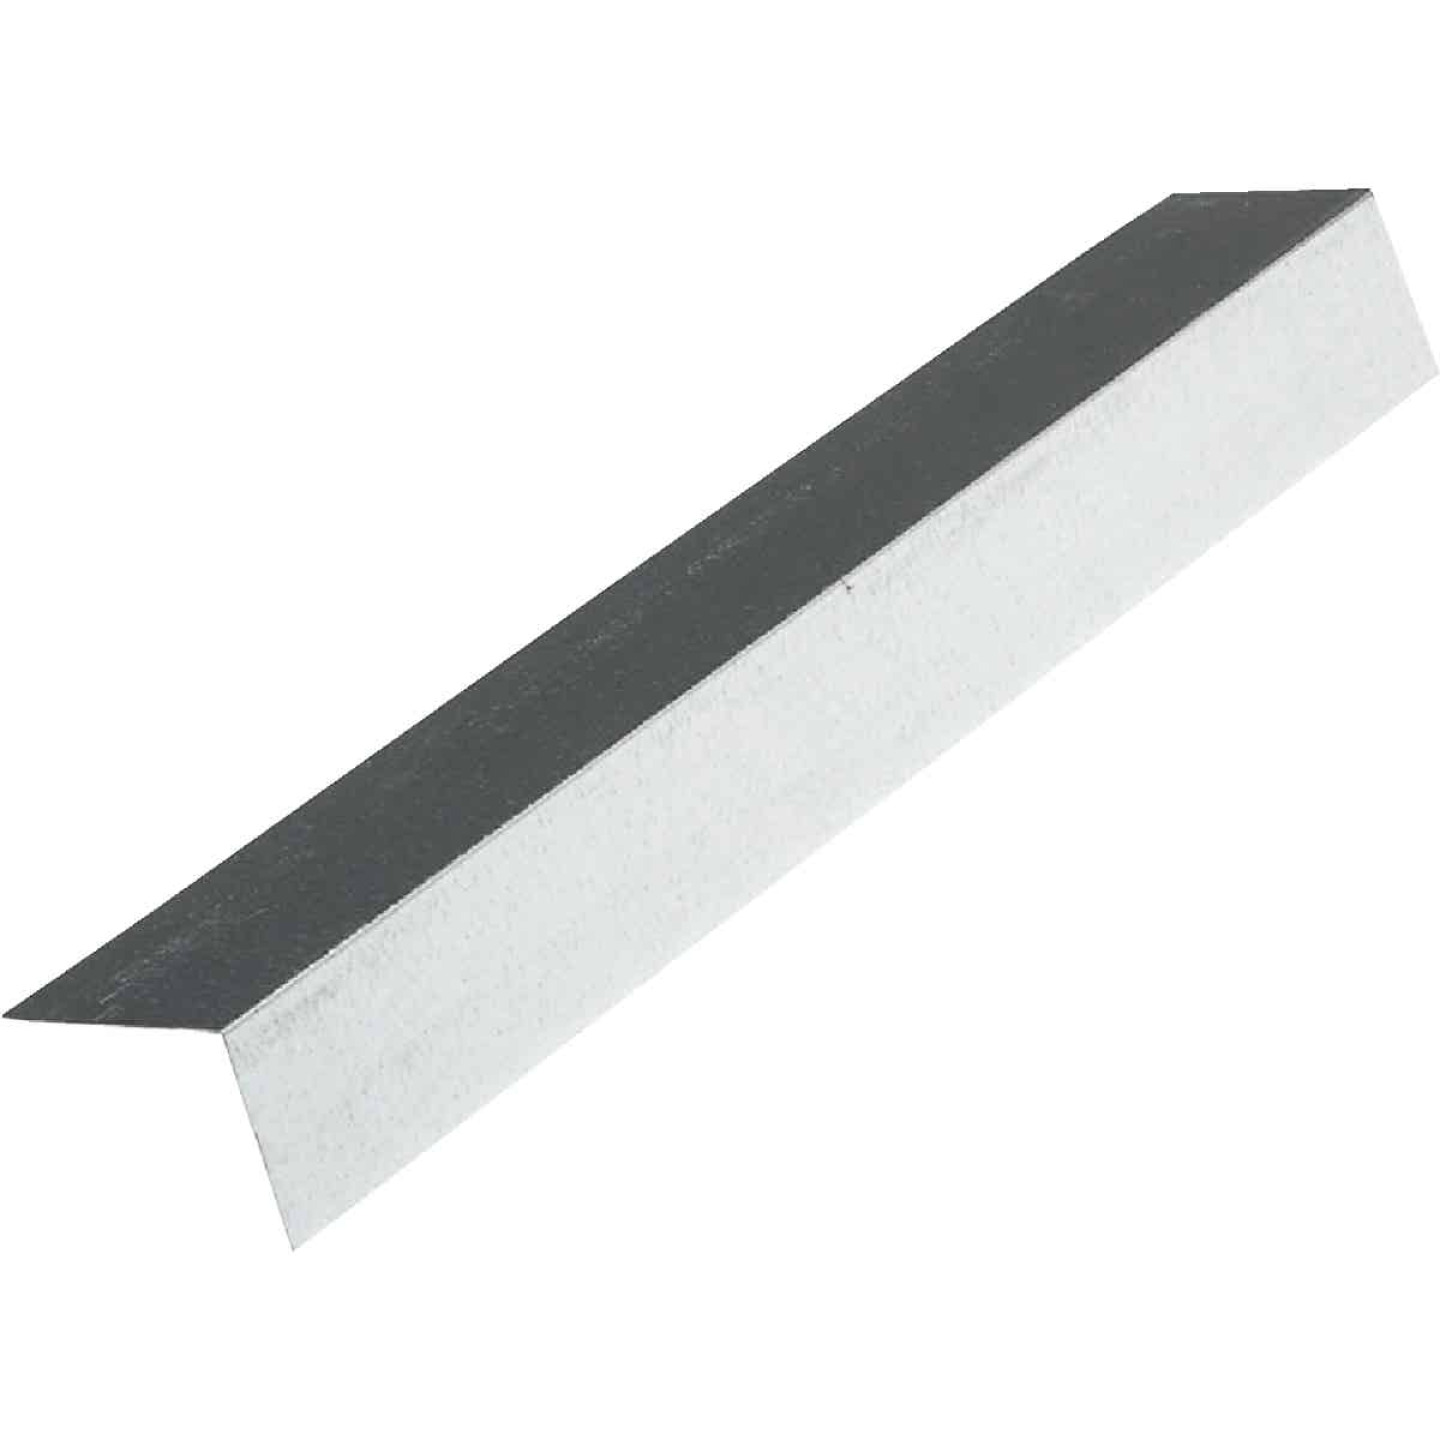 NorWesco A 2 In. X 2 In. Galvanized Steel Roof & Drip Edge Flashing Image 1